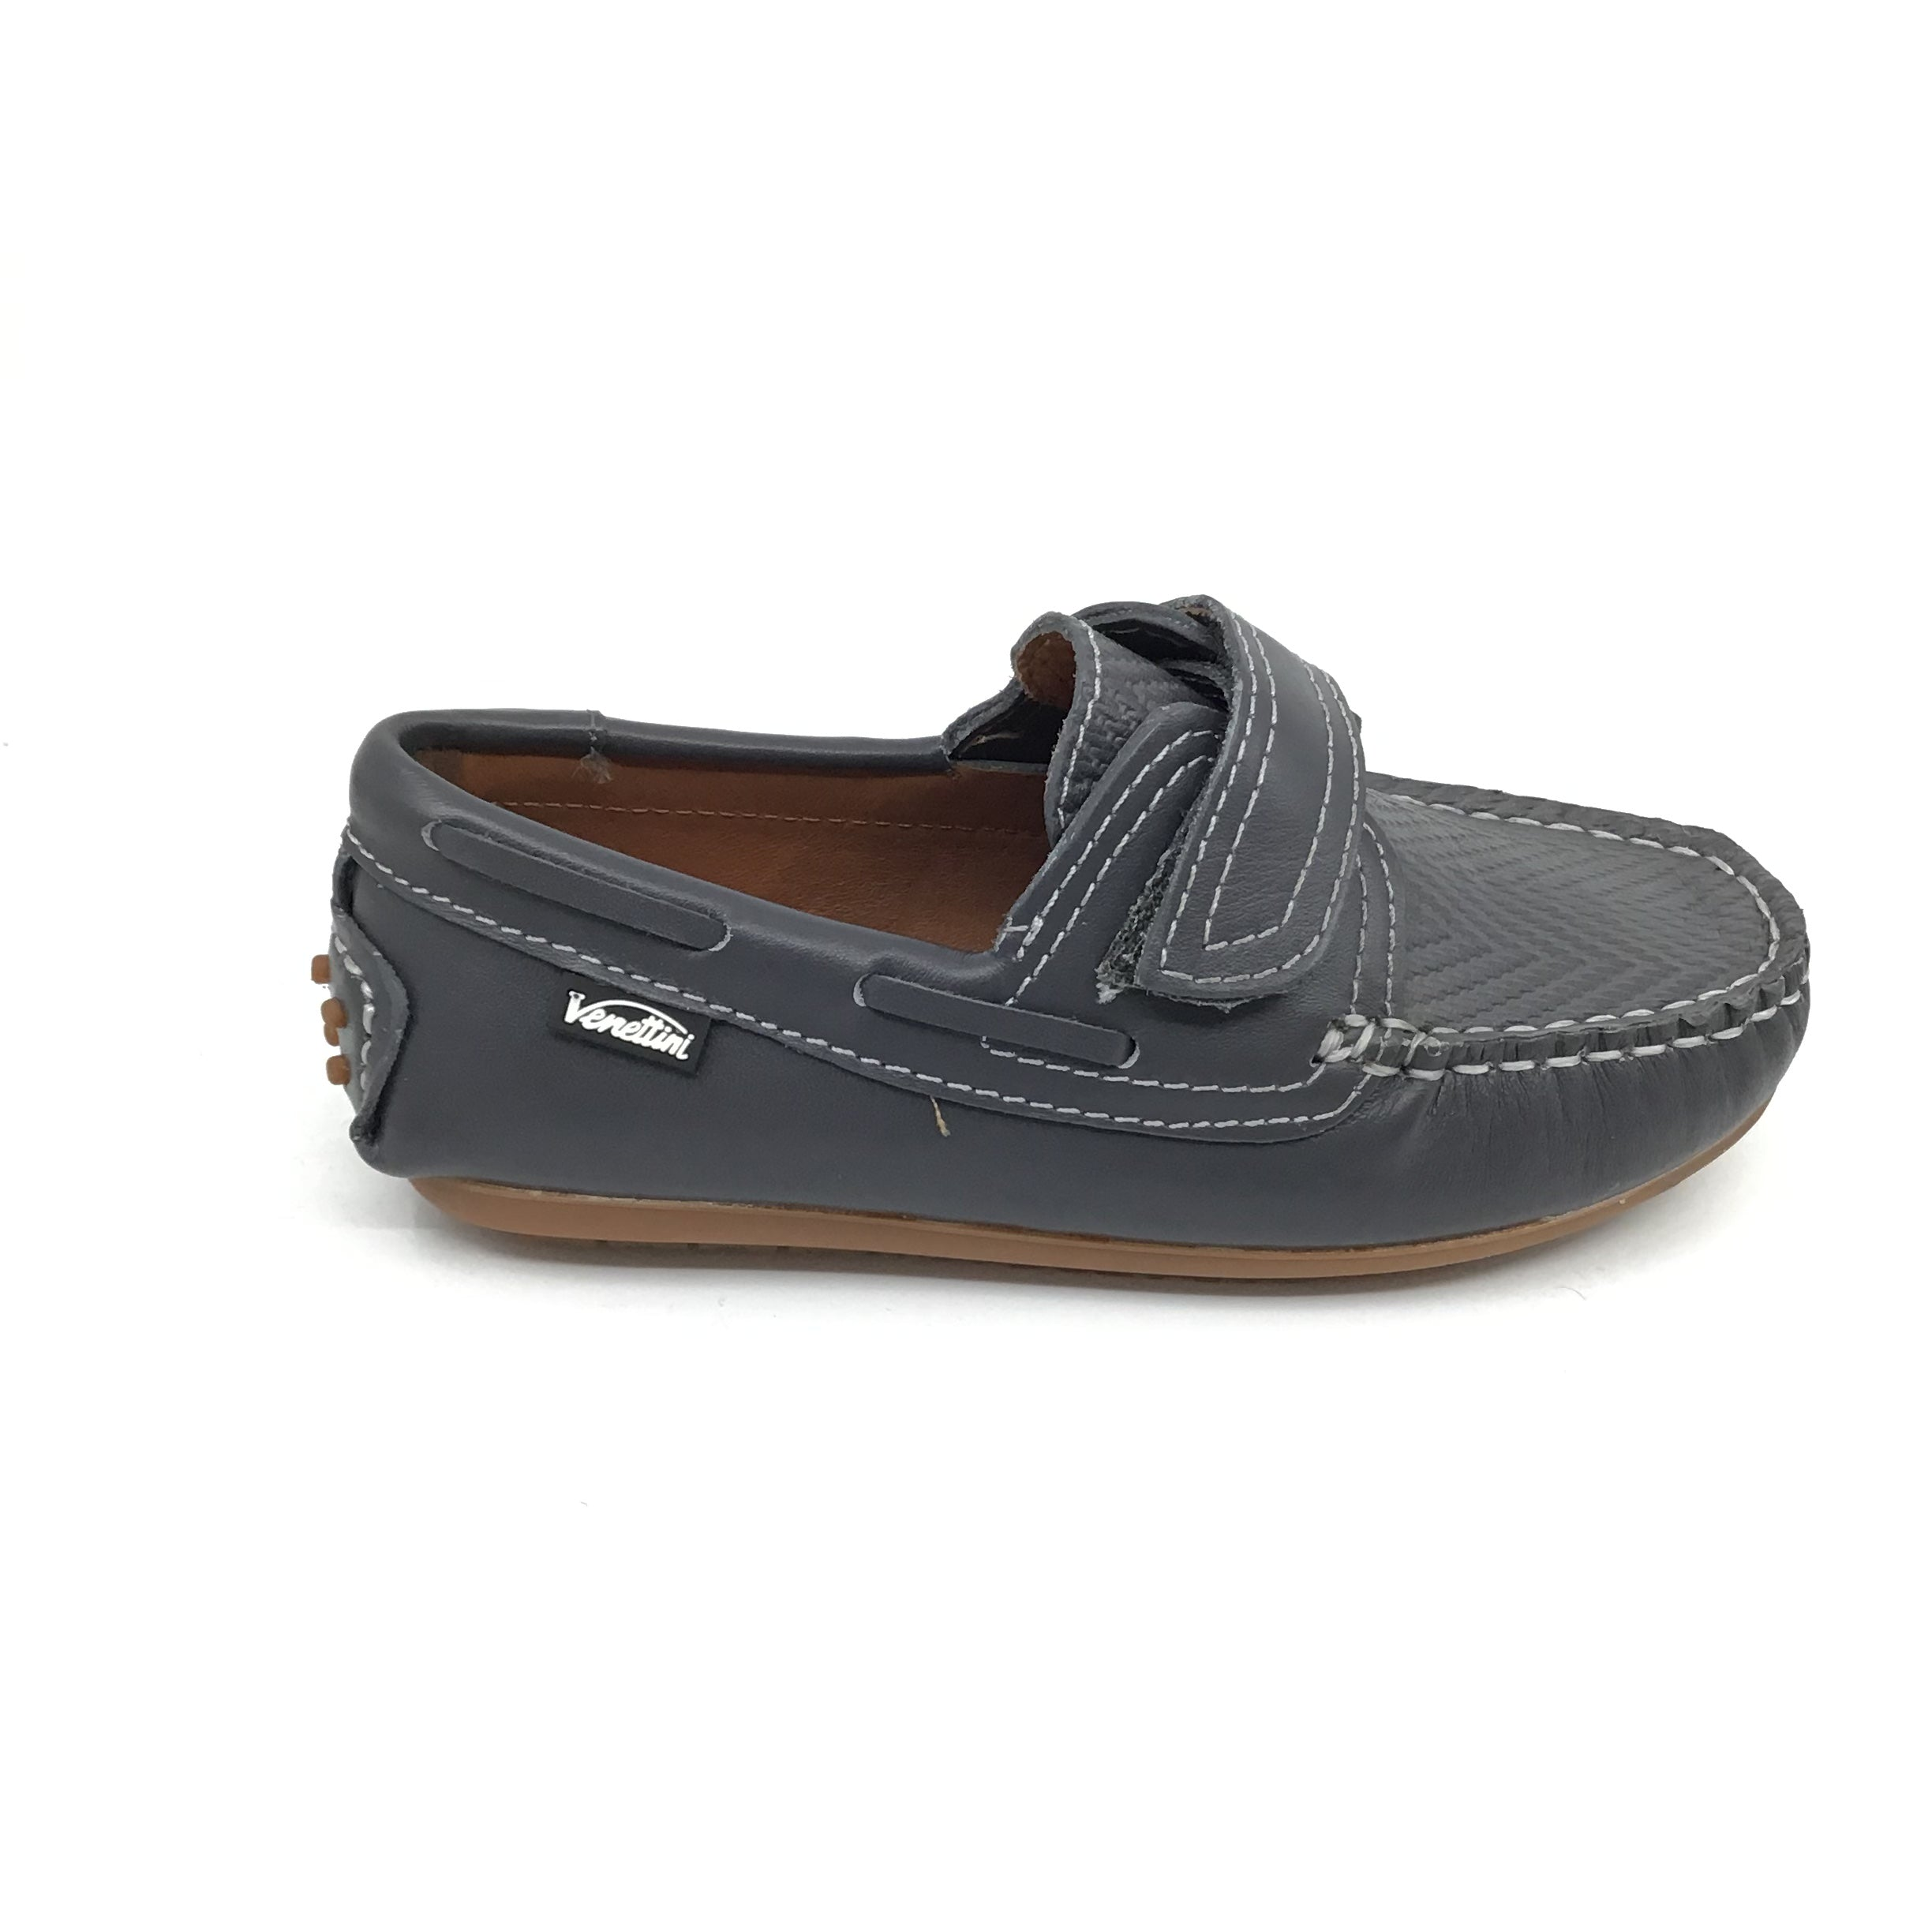 Venettini Navy Stitched Velcro Moccasin